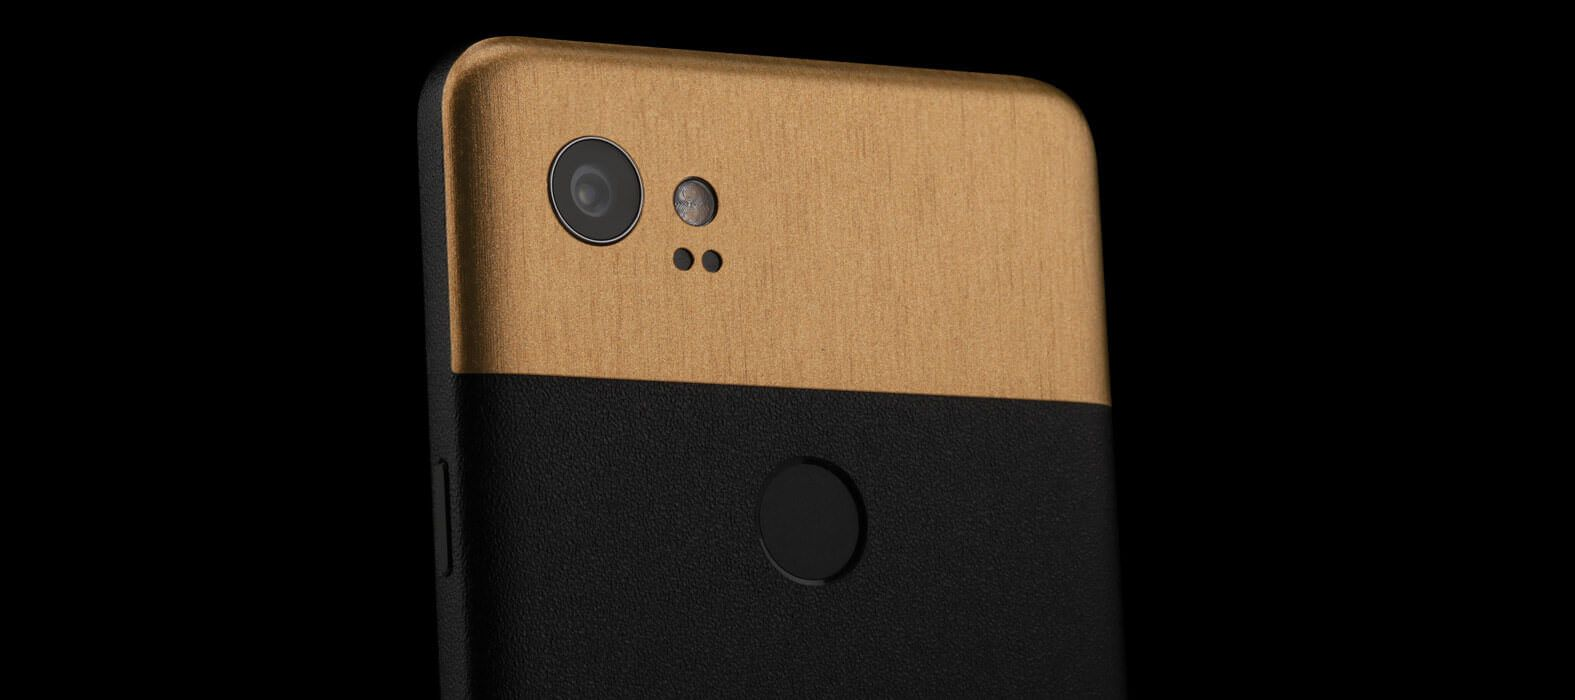 Pixel 2 XL Skins Sandstone Black Wraps & Decals